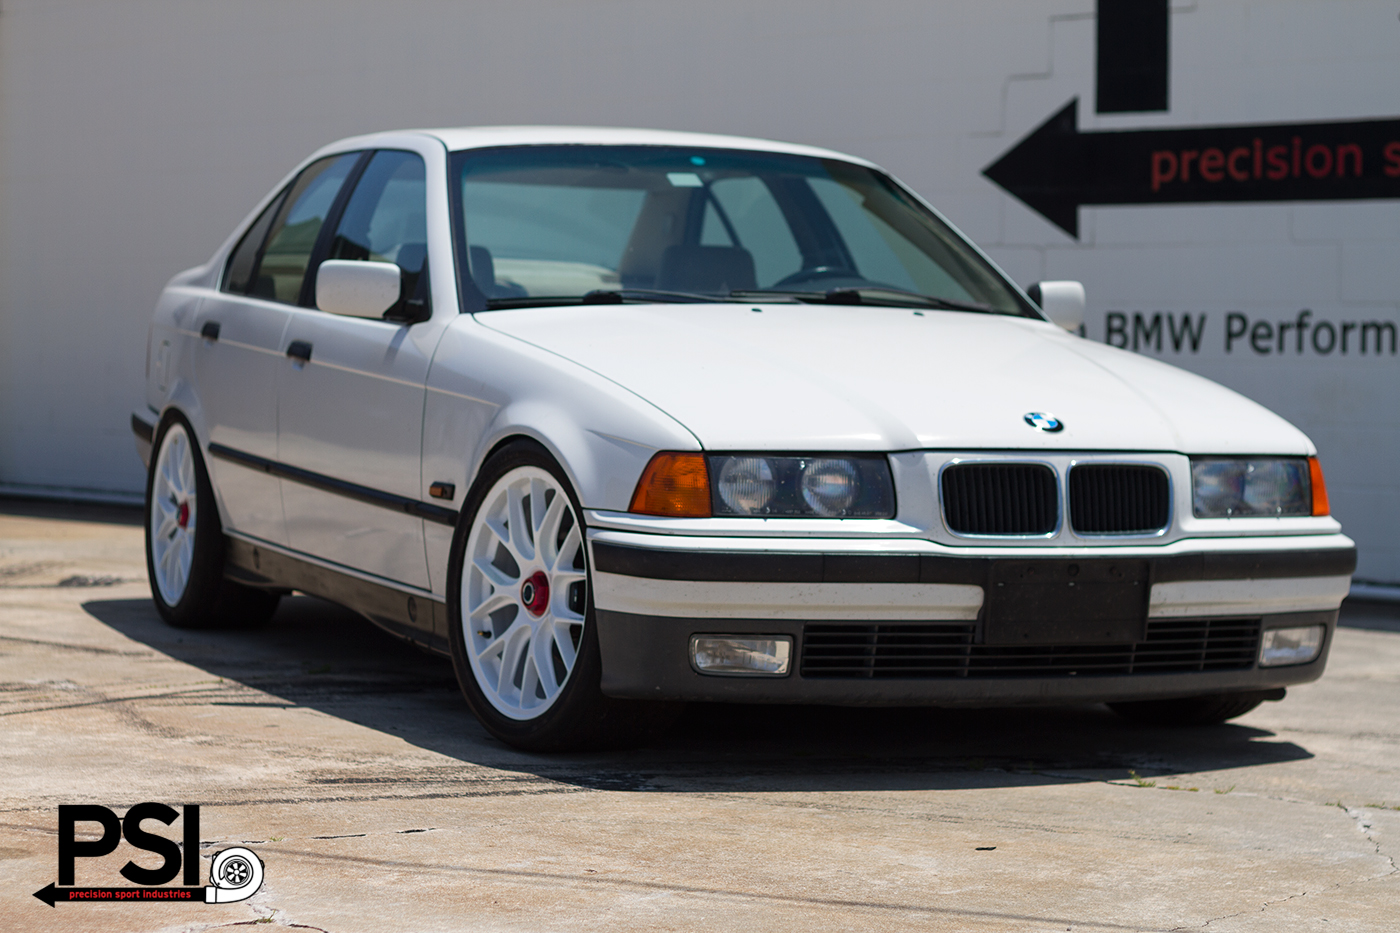 BMW E36 Centerlock Conversion